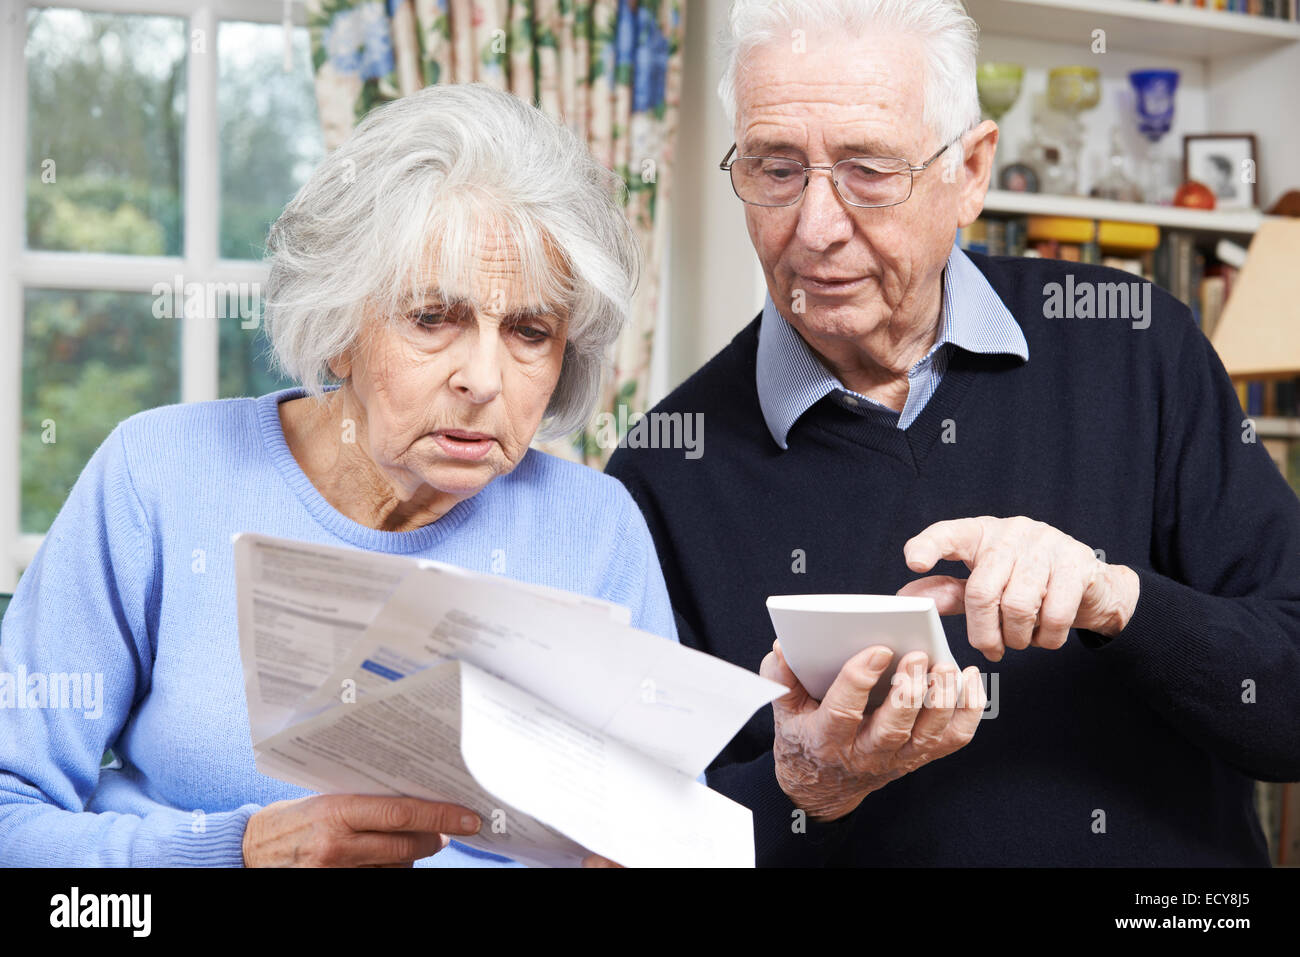 Senior Couple At Home With Bills Worried About Home Finances - Stock Image